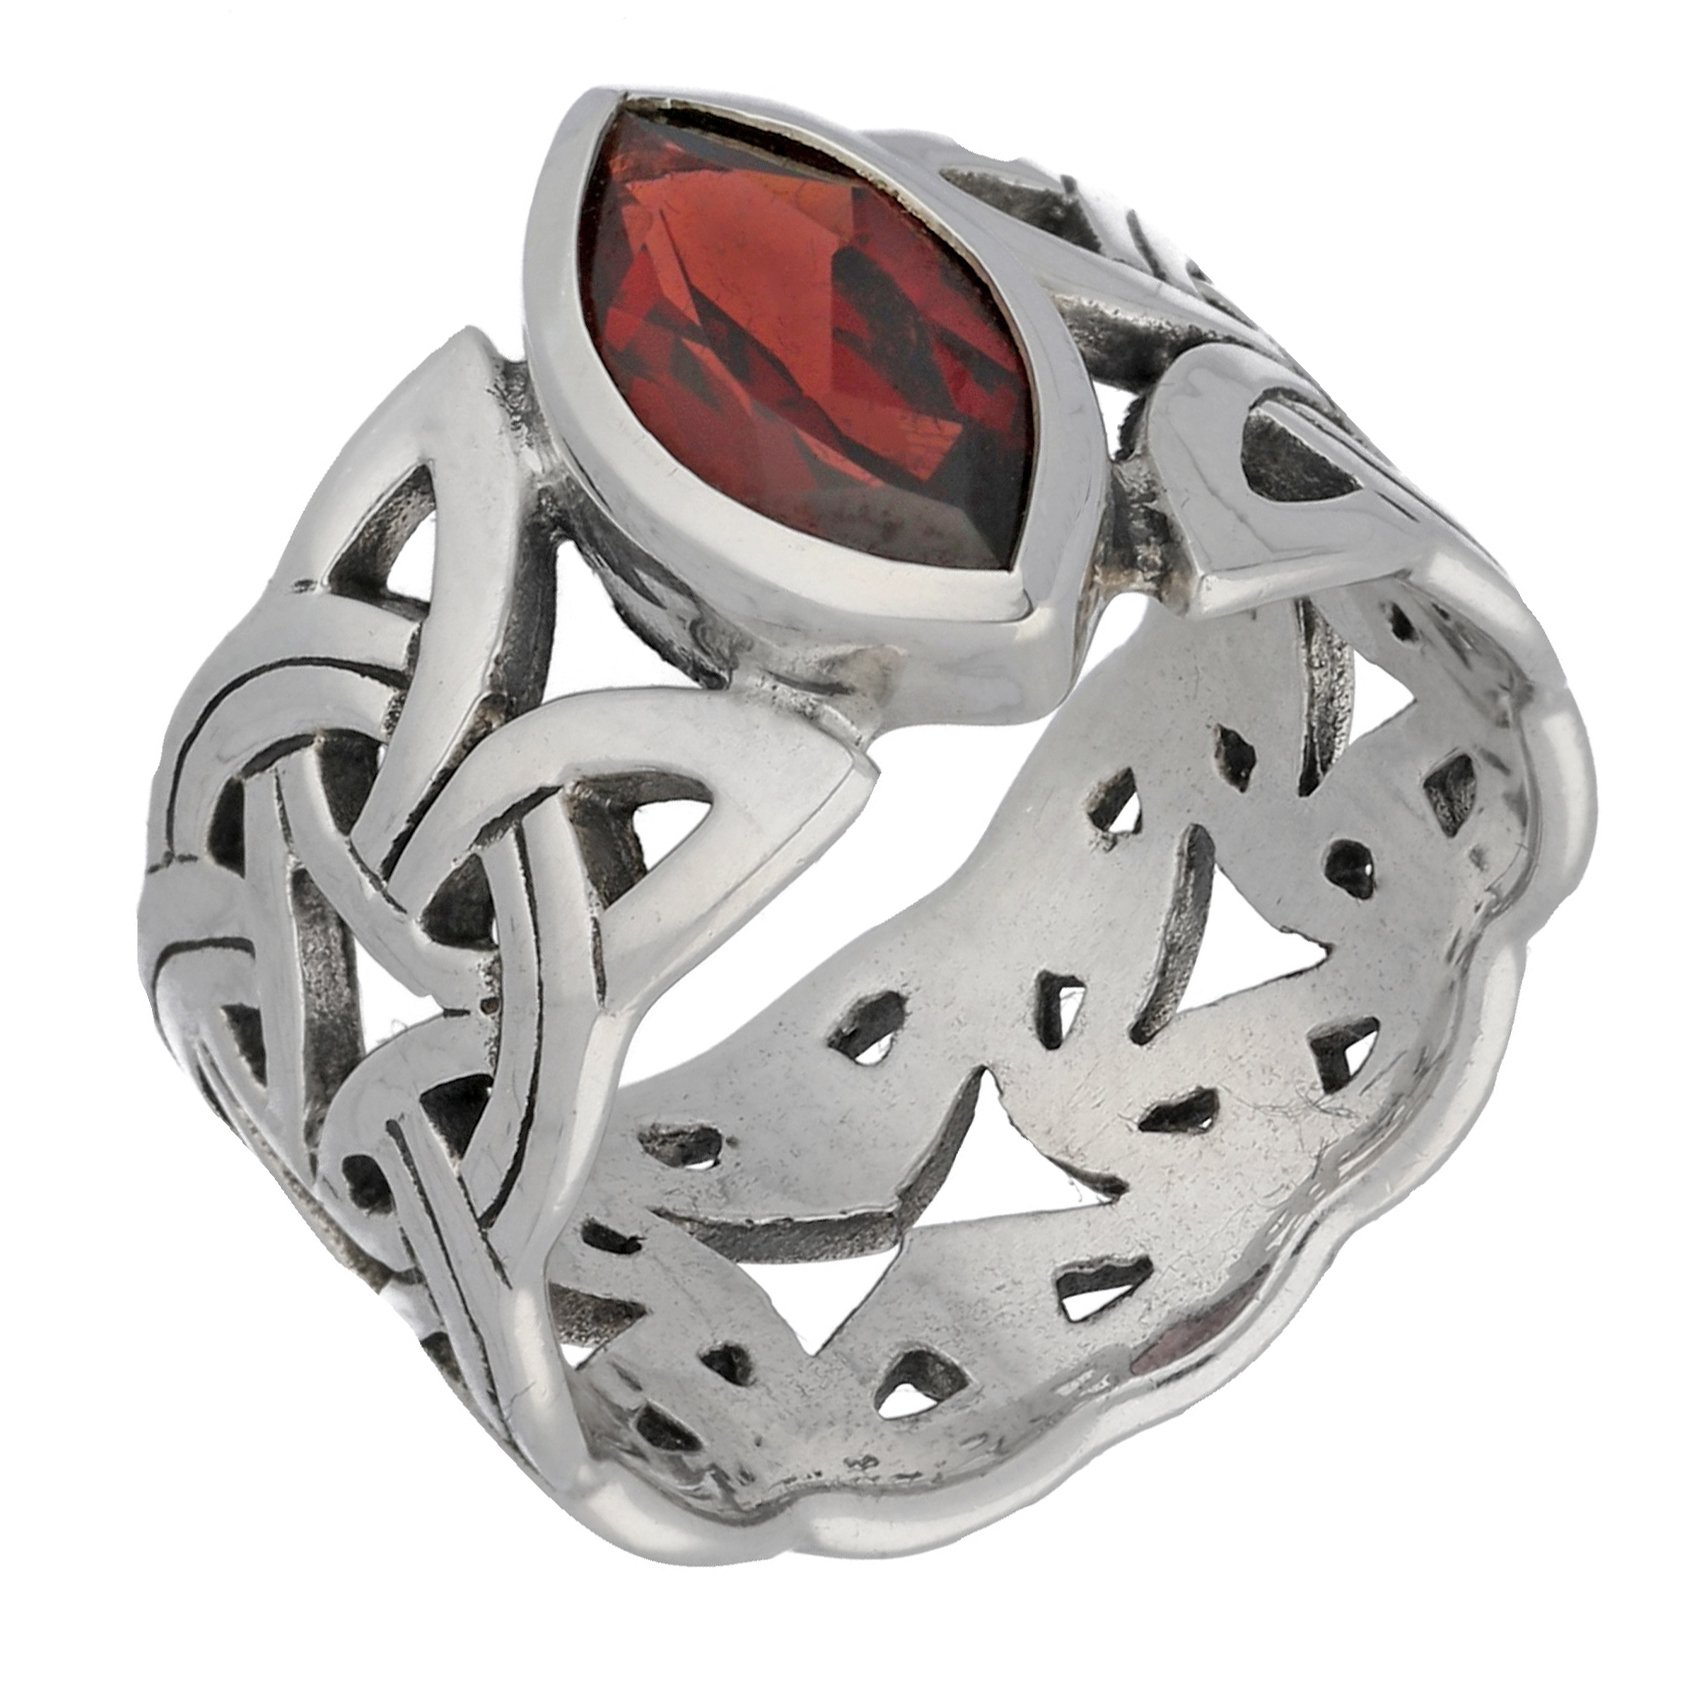 Borre Knot Deep Red Garnet Ellipse Viking Braided Wedding Band Norse Celtic Sterling Silver Ring Size 10(Sizes 4,5,6,7,8,9,10,11,12,13,14,15)